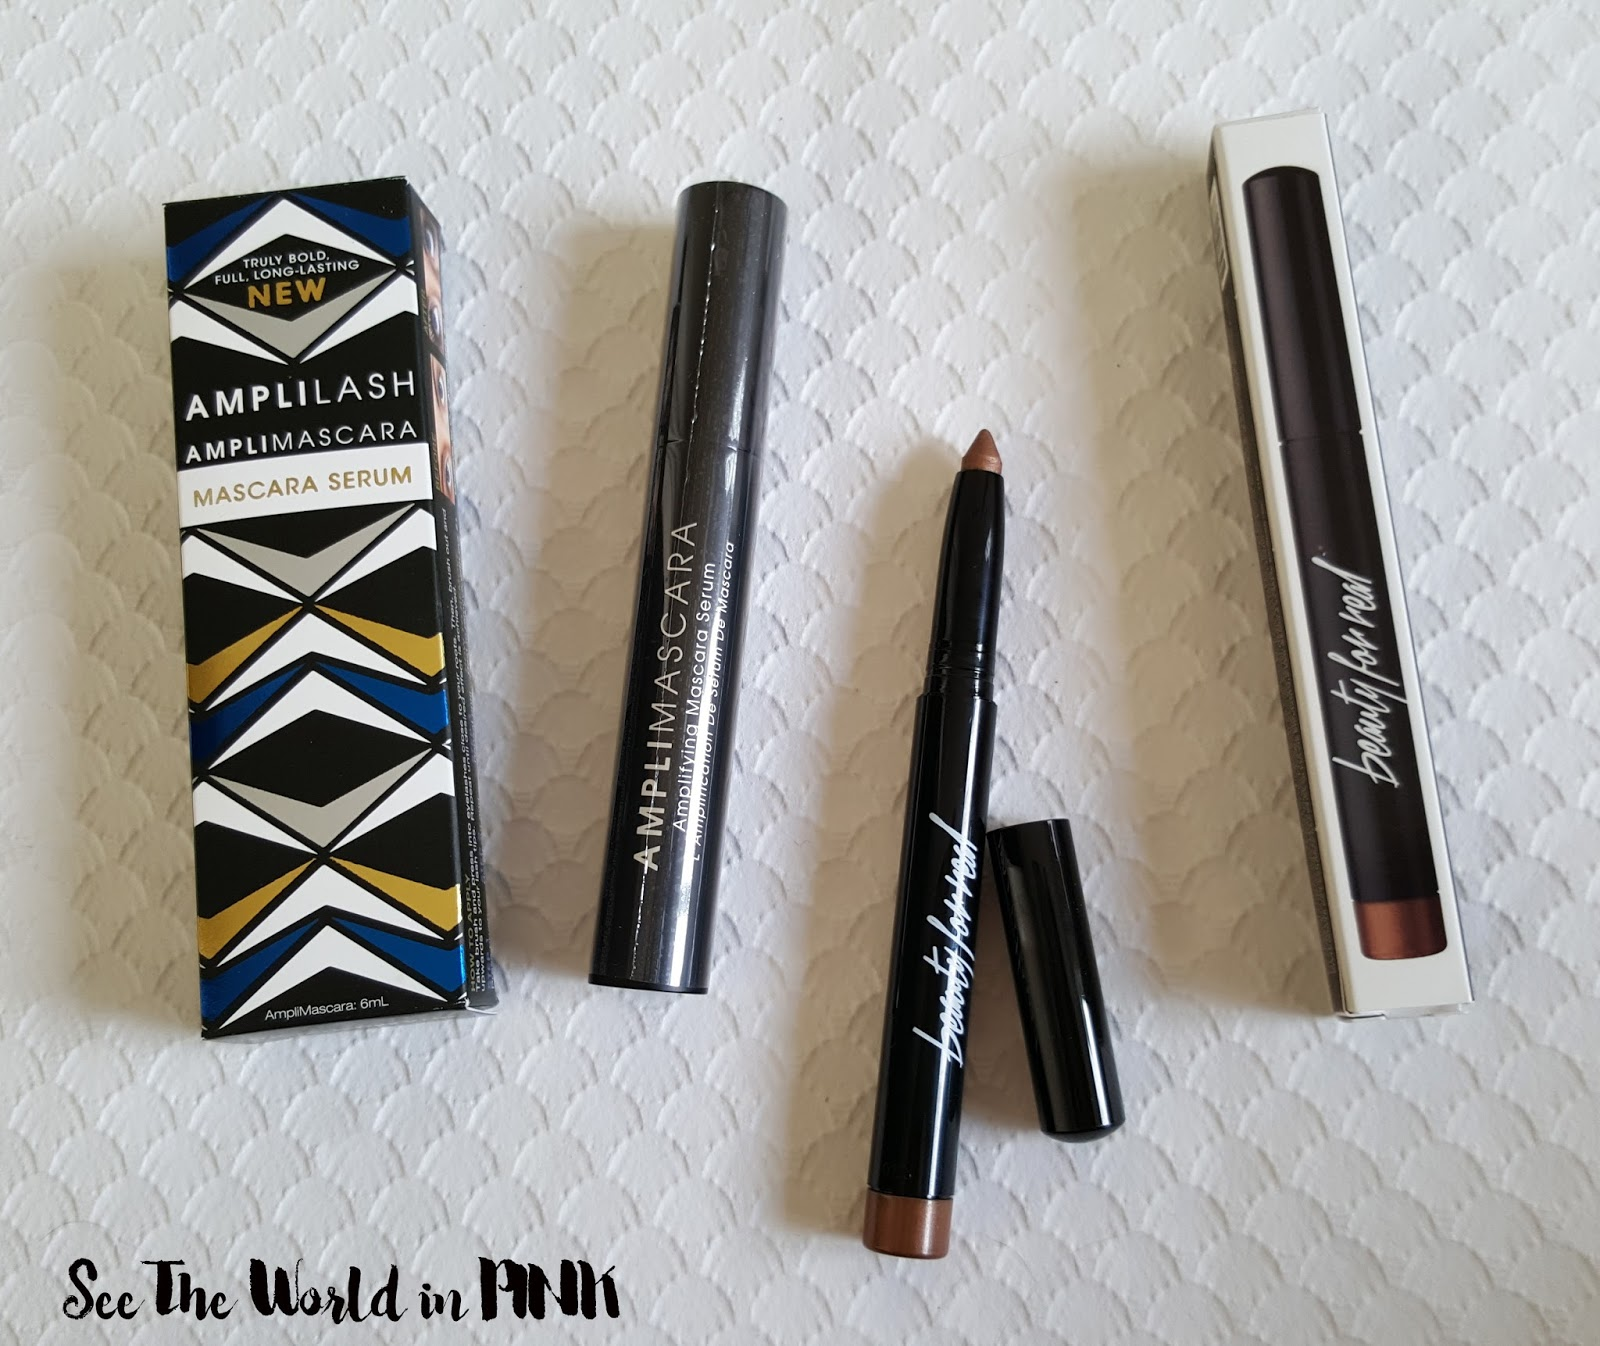 August 2016 Boxycharm - Review and Unboxing